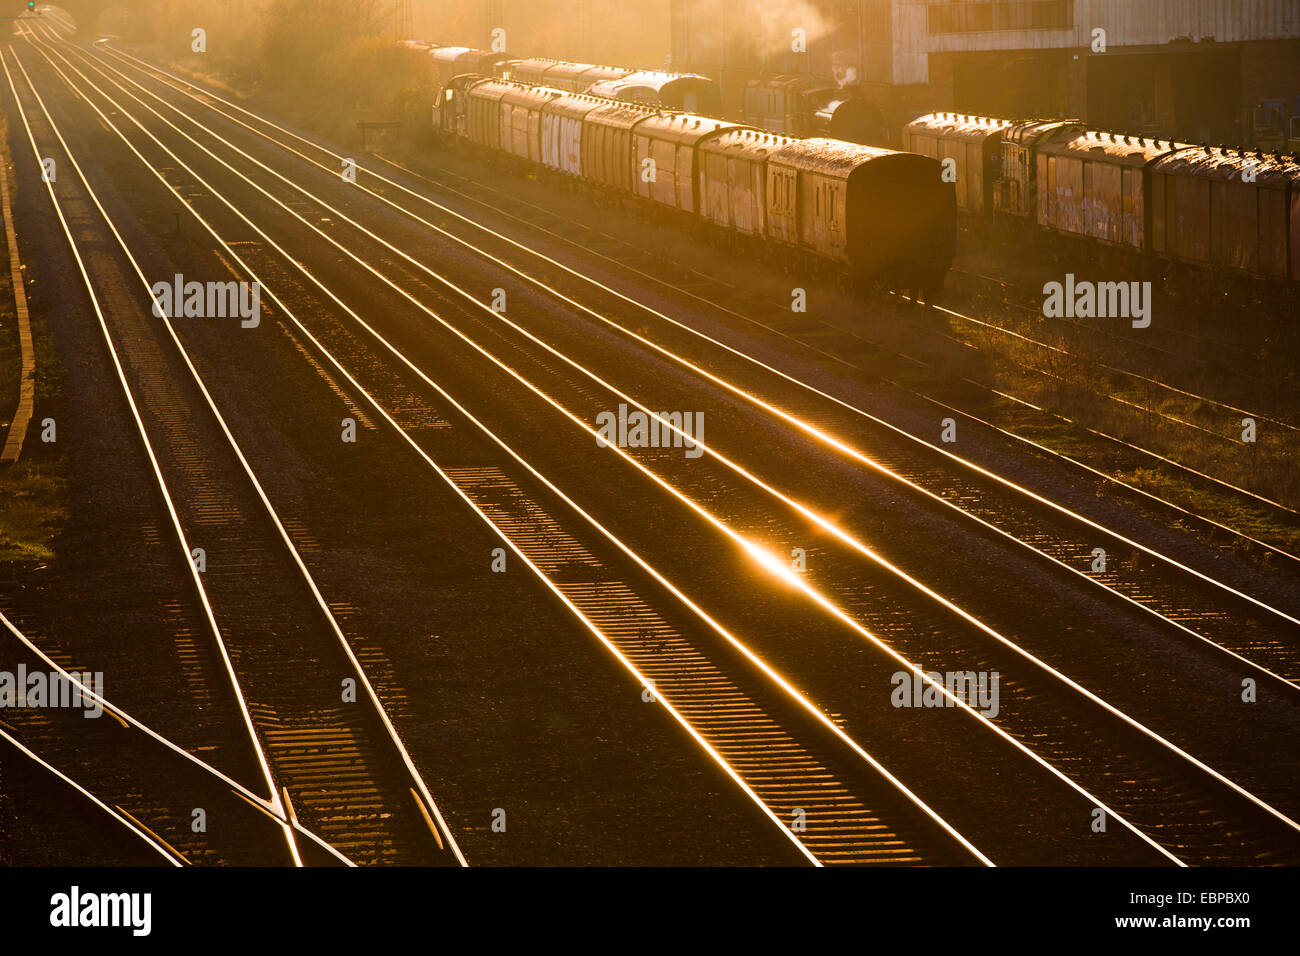 Railway lines at Burton-on-Trent, UK, in later afternoon winter sunshine. - Stock Image